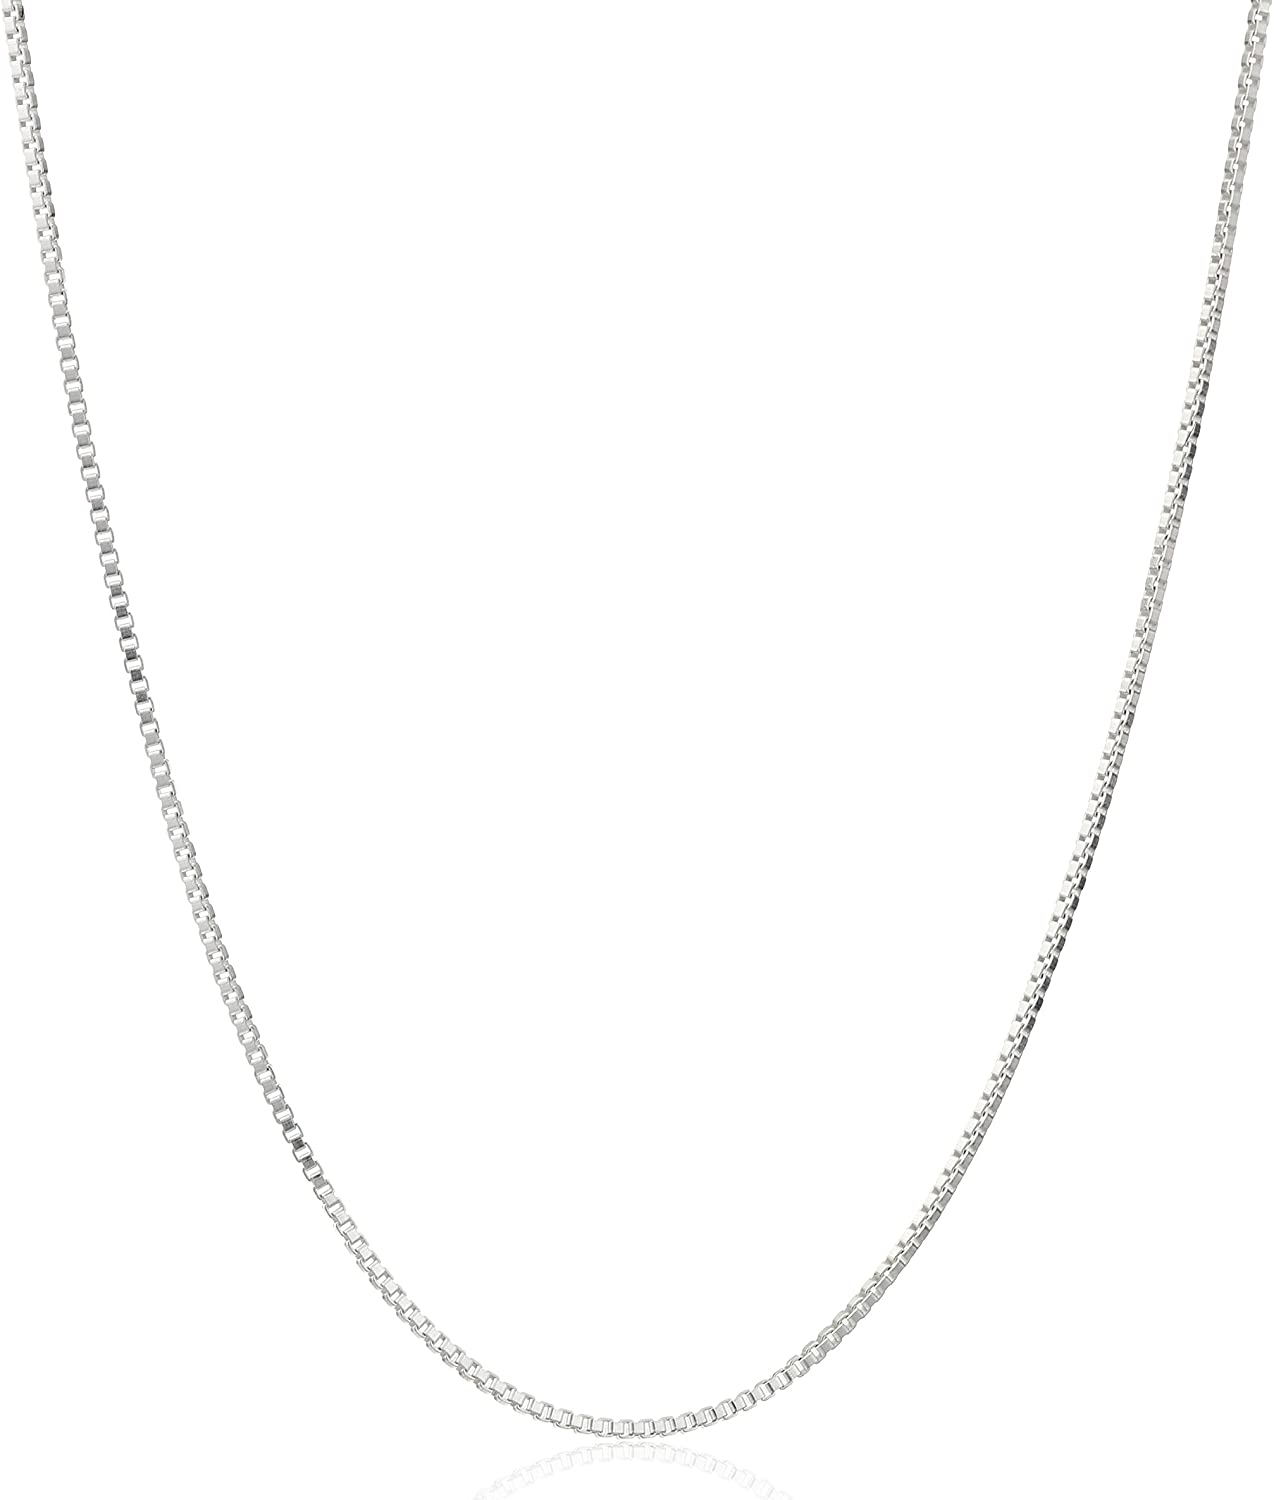 """Honolulu Jewelry Company Sterling Silver 1mm Box Chain Necklace, 14"""" - 36"""""""